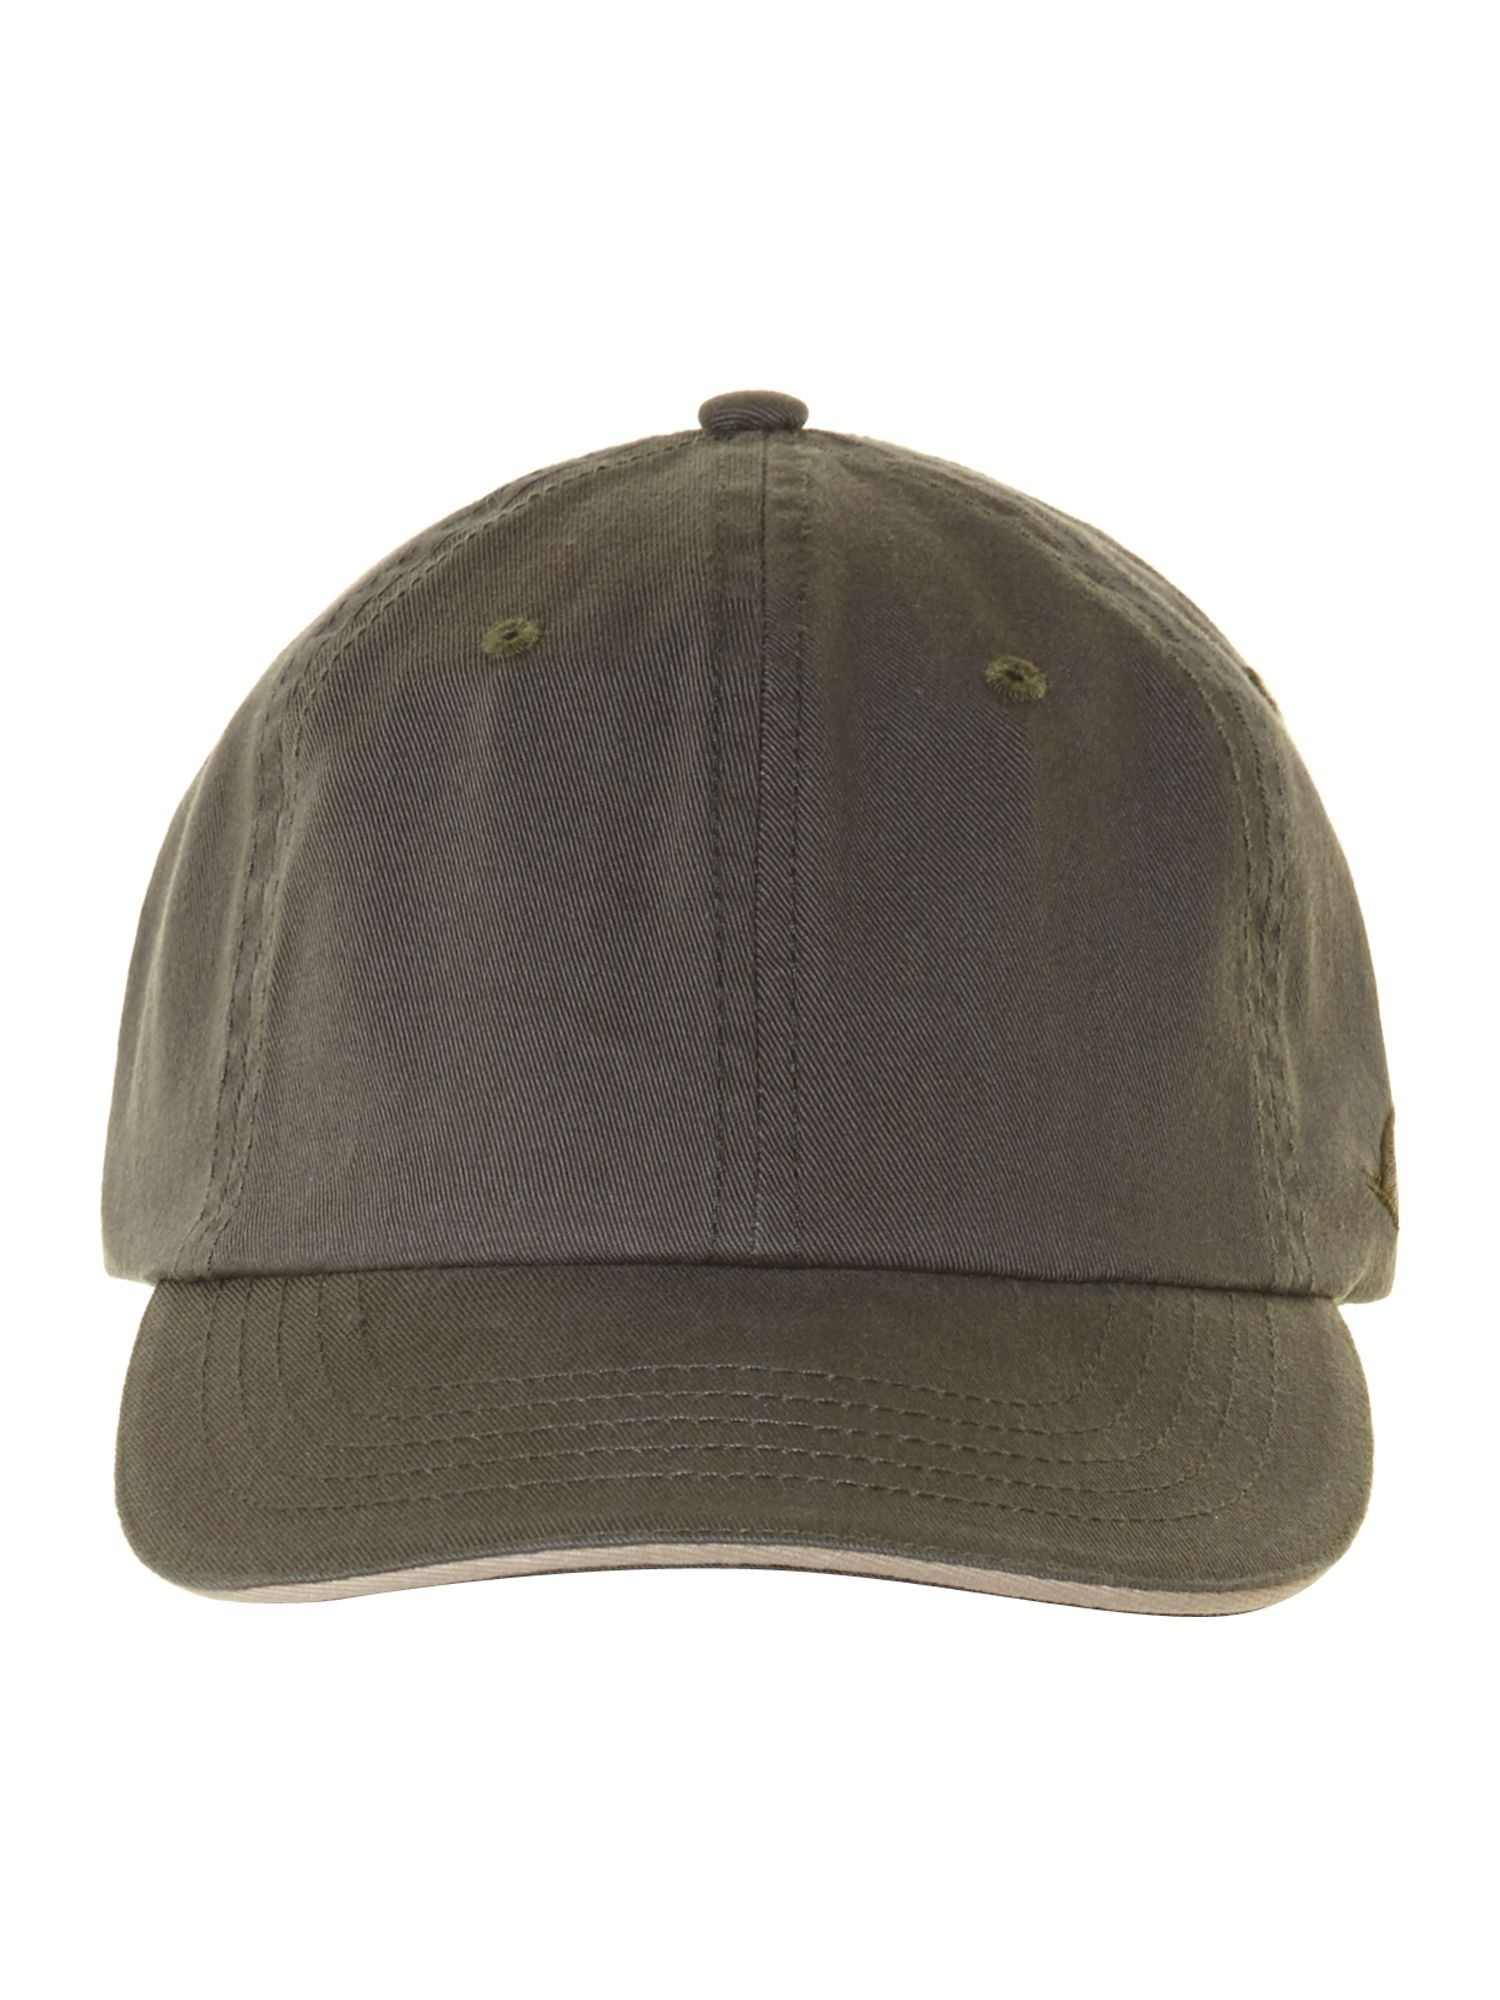 Classic baseball cap with contrast edge